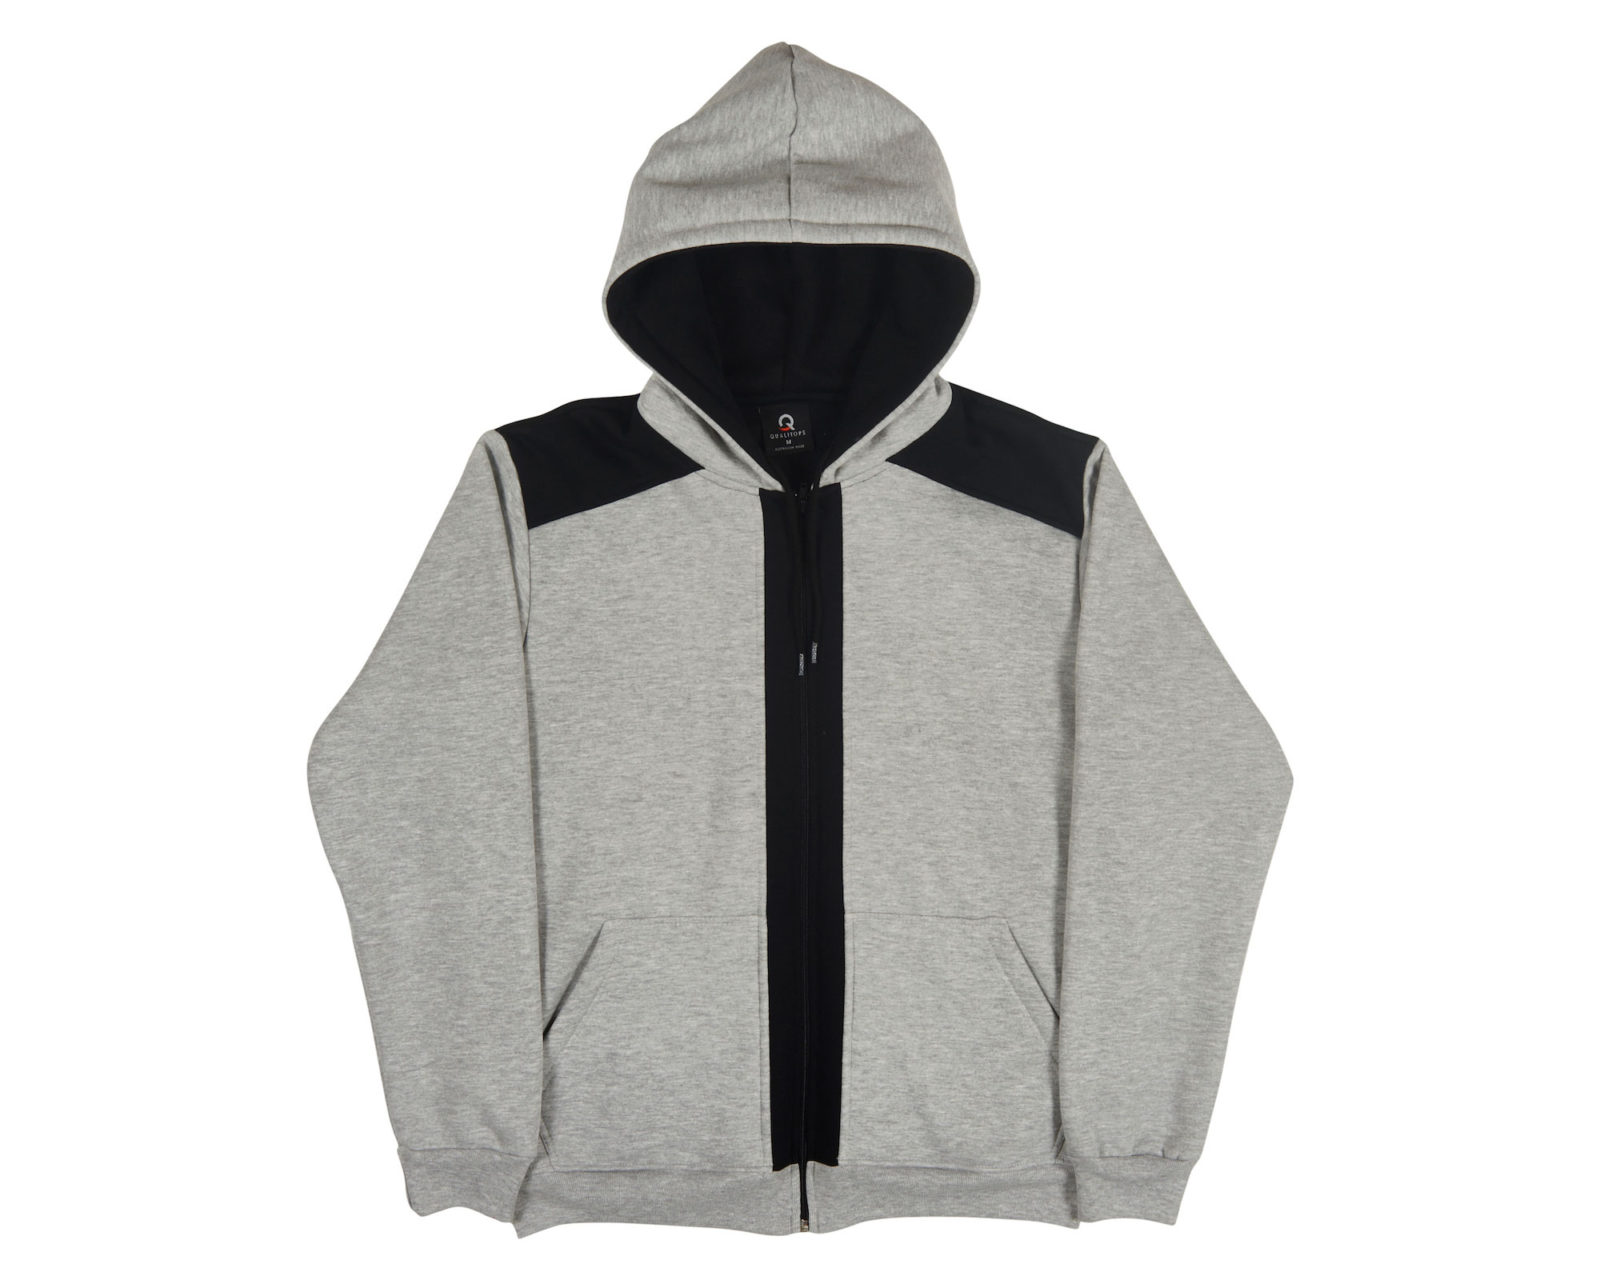 Qualitops Mens Two Tone Zip Hoodie Polycotton Australian made clothing